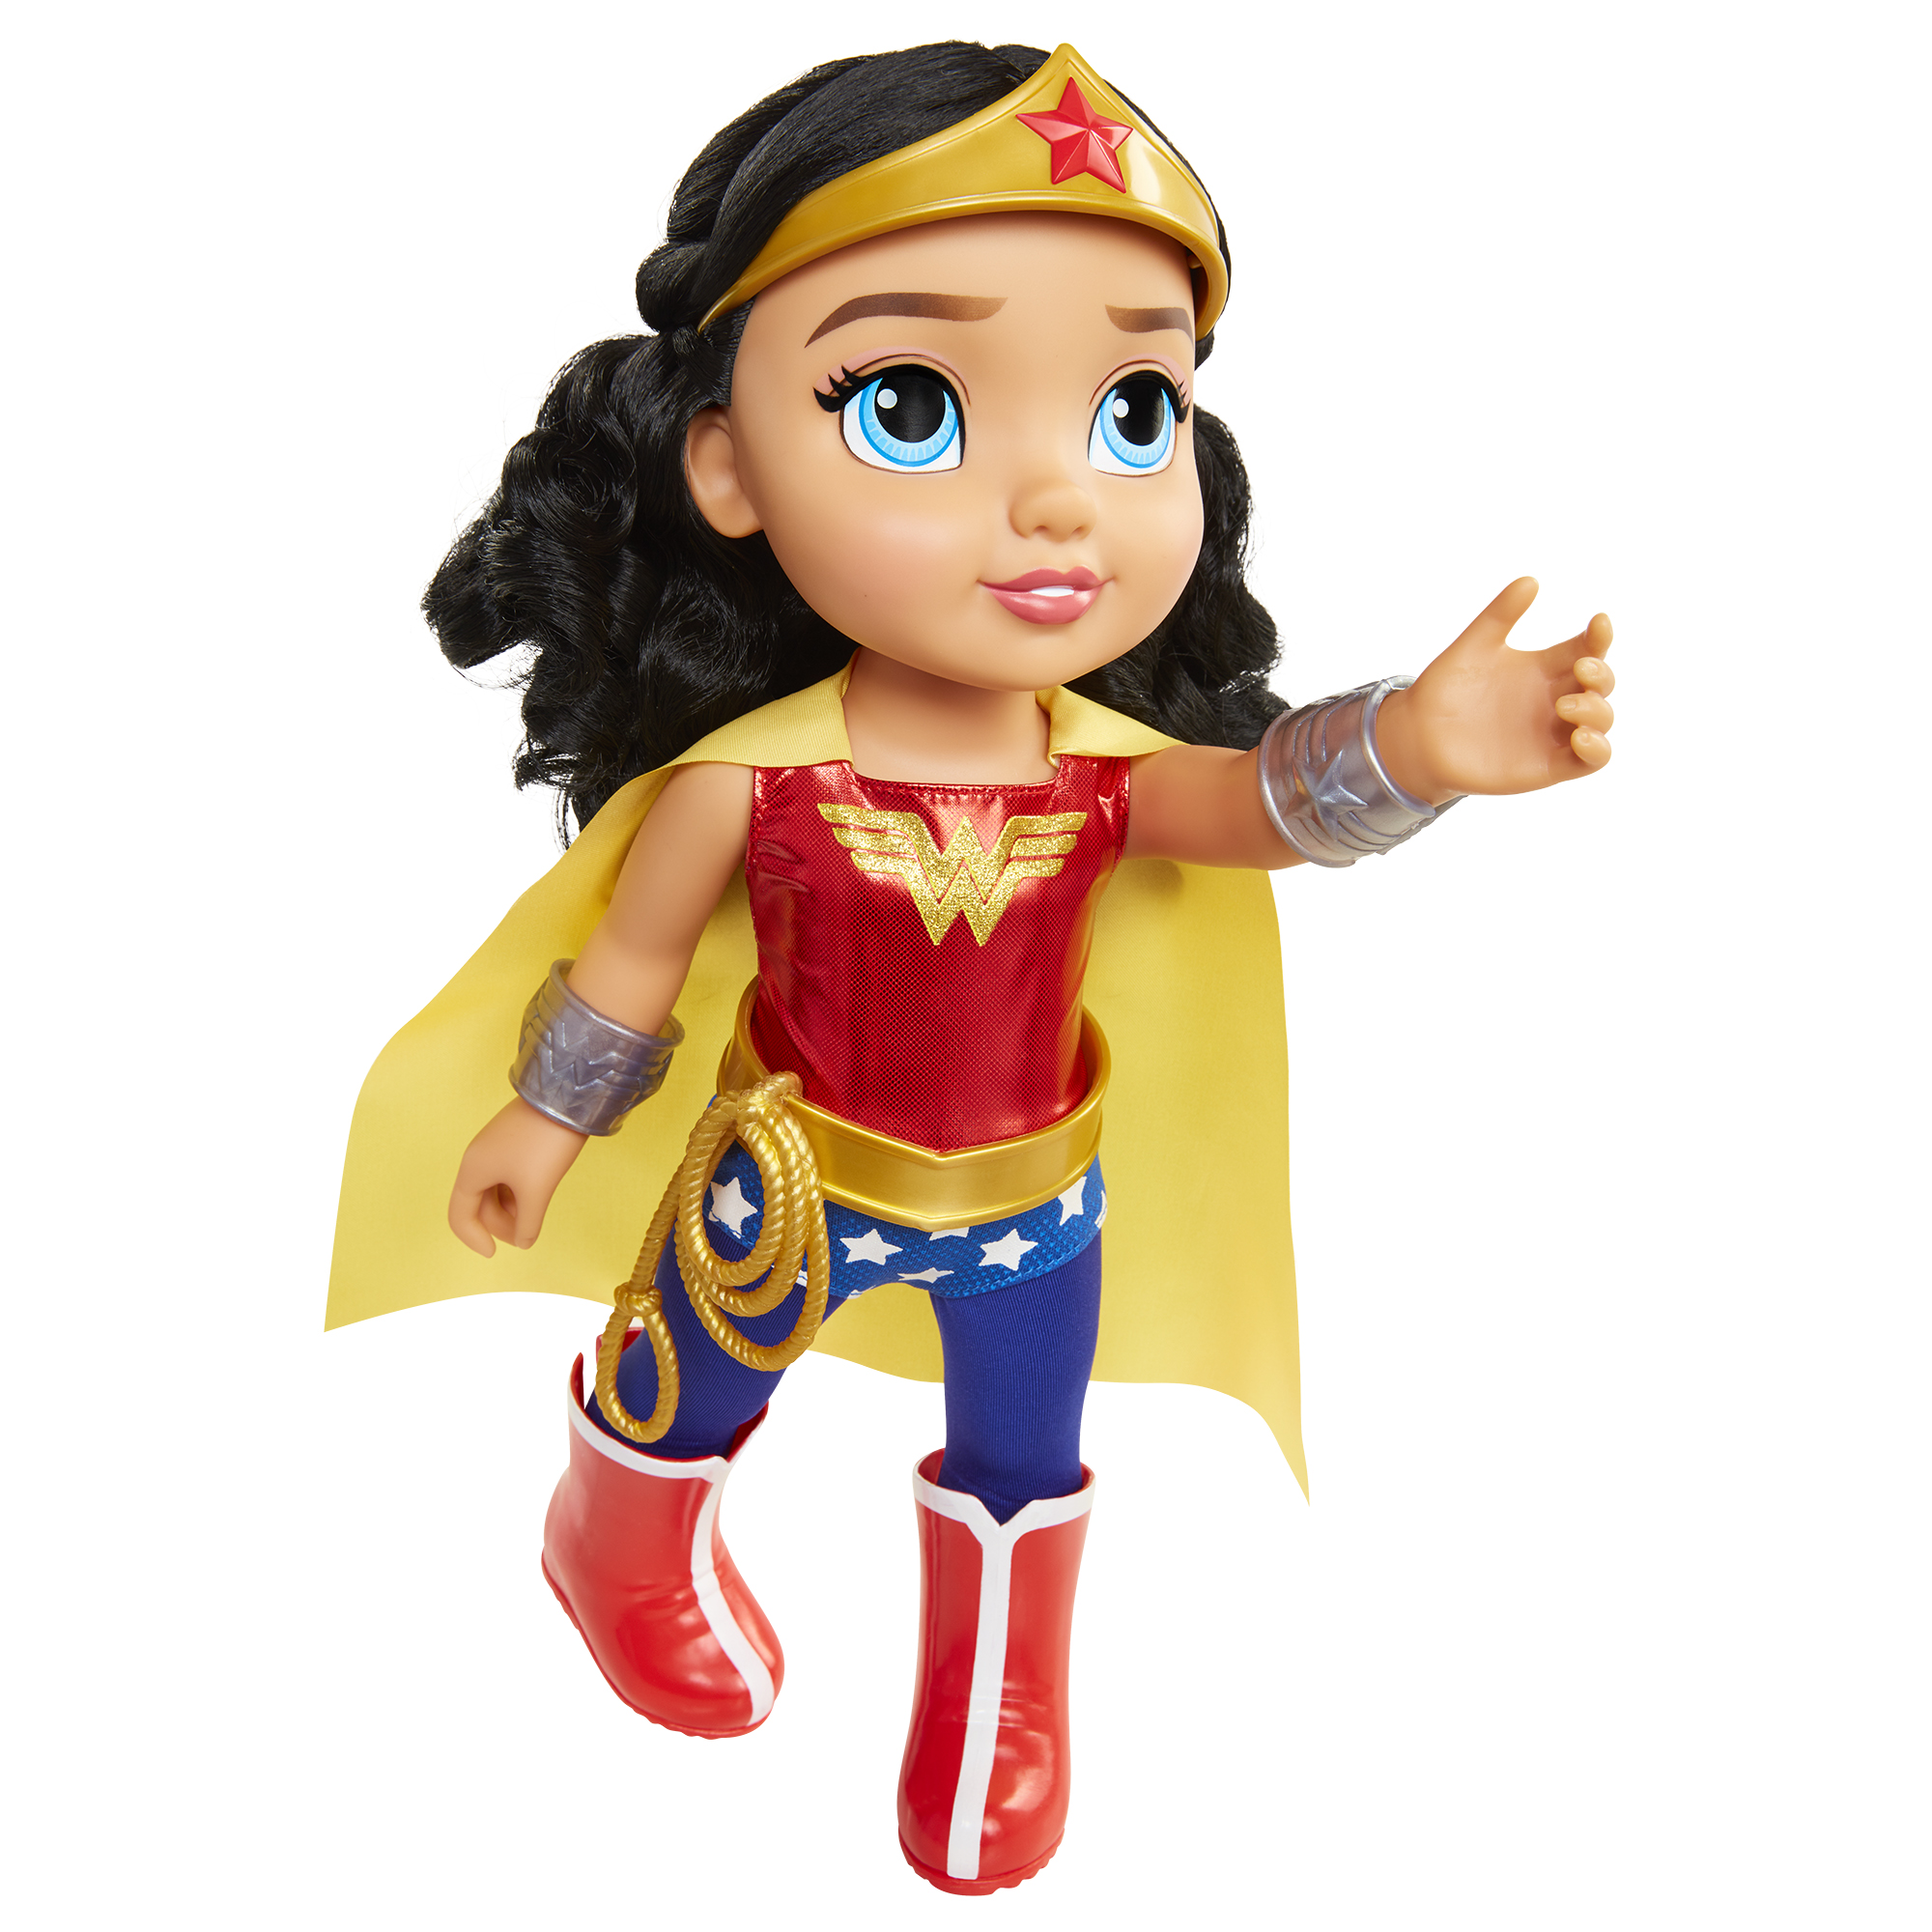 DC Wonder Woman Toddler Doll